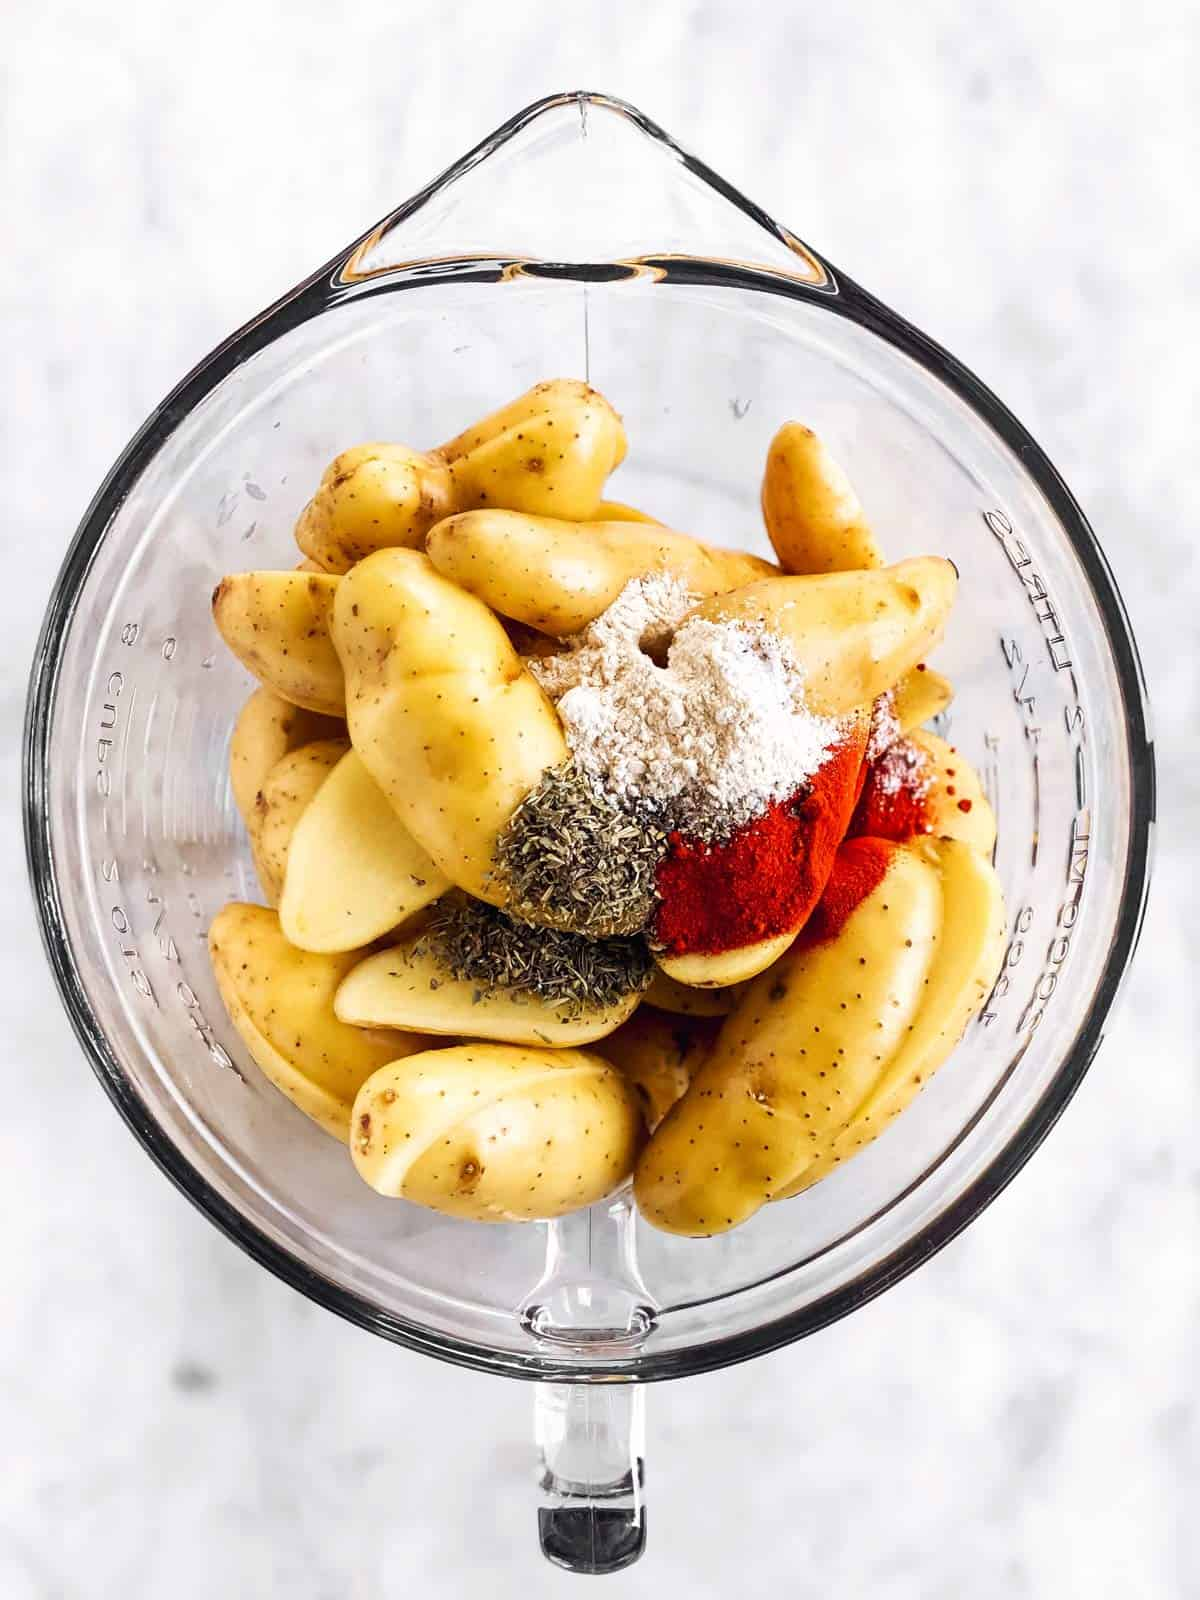 glass bowl filled with halved fingerling potatoes and seasoning